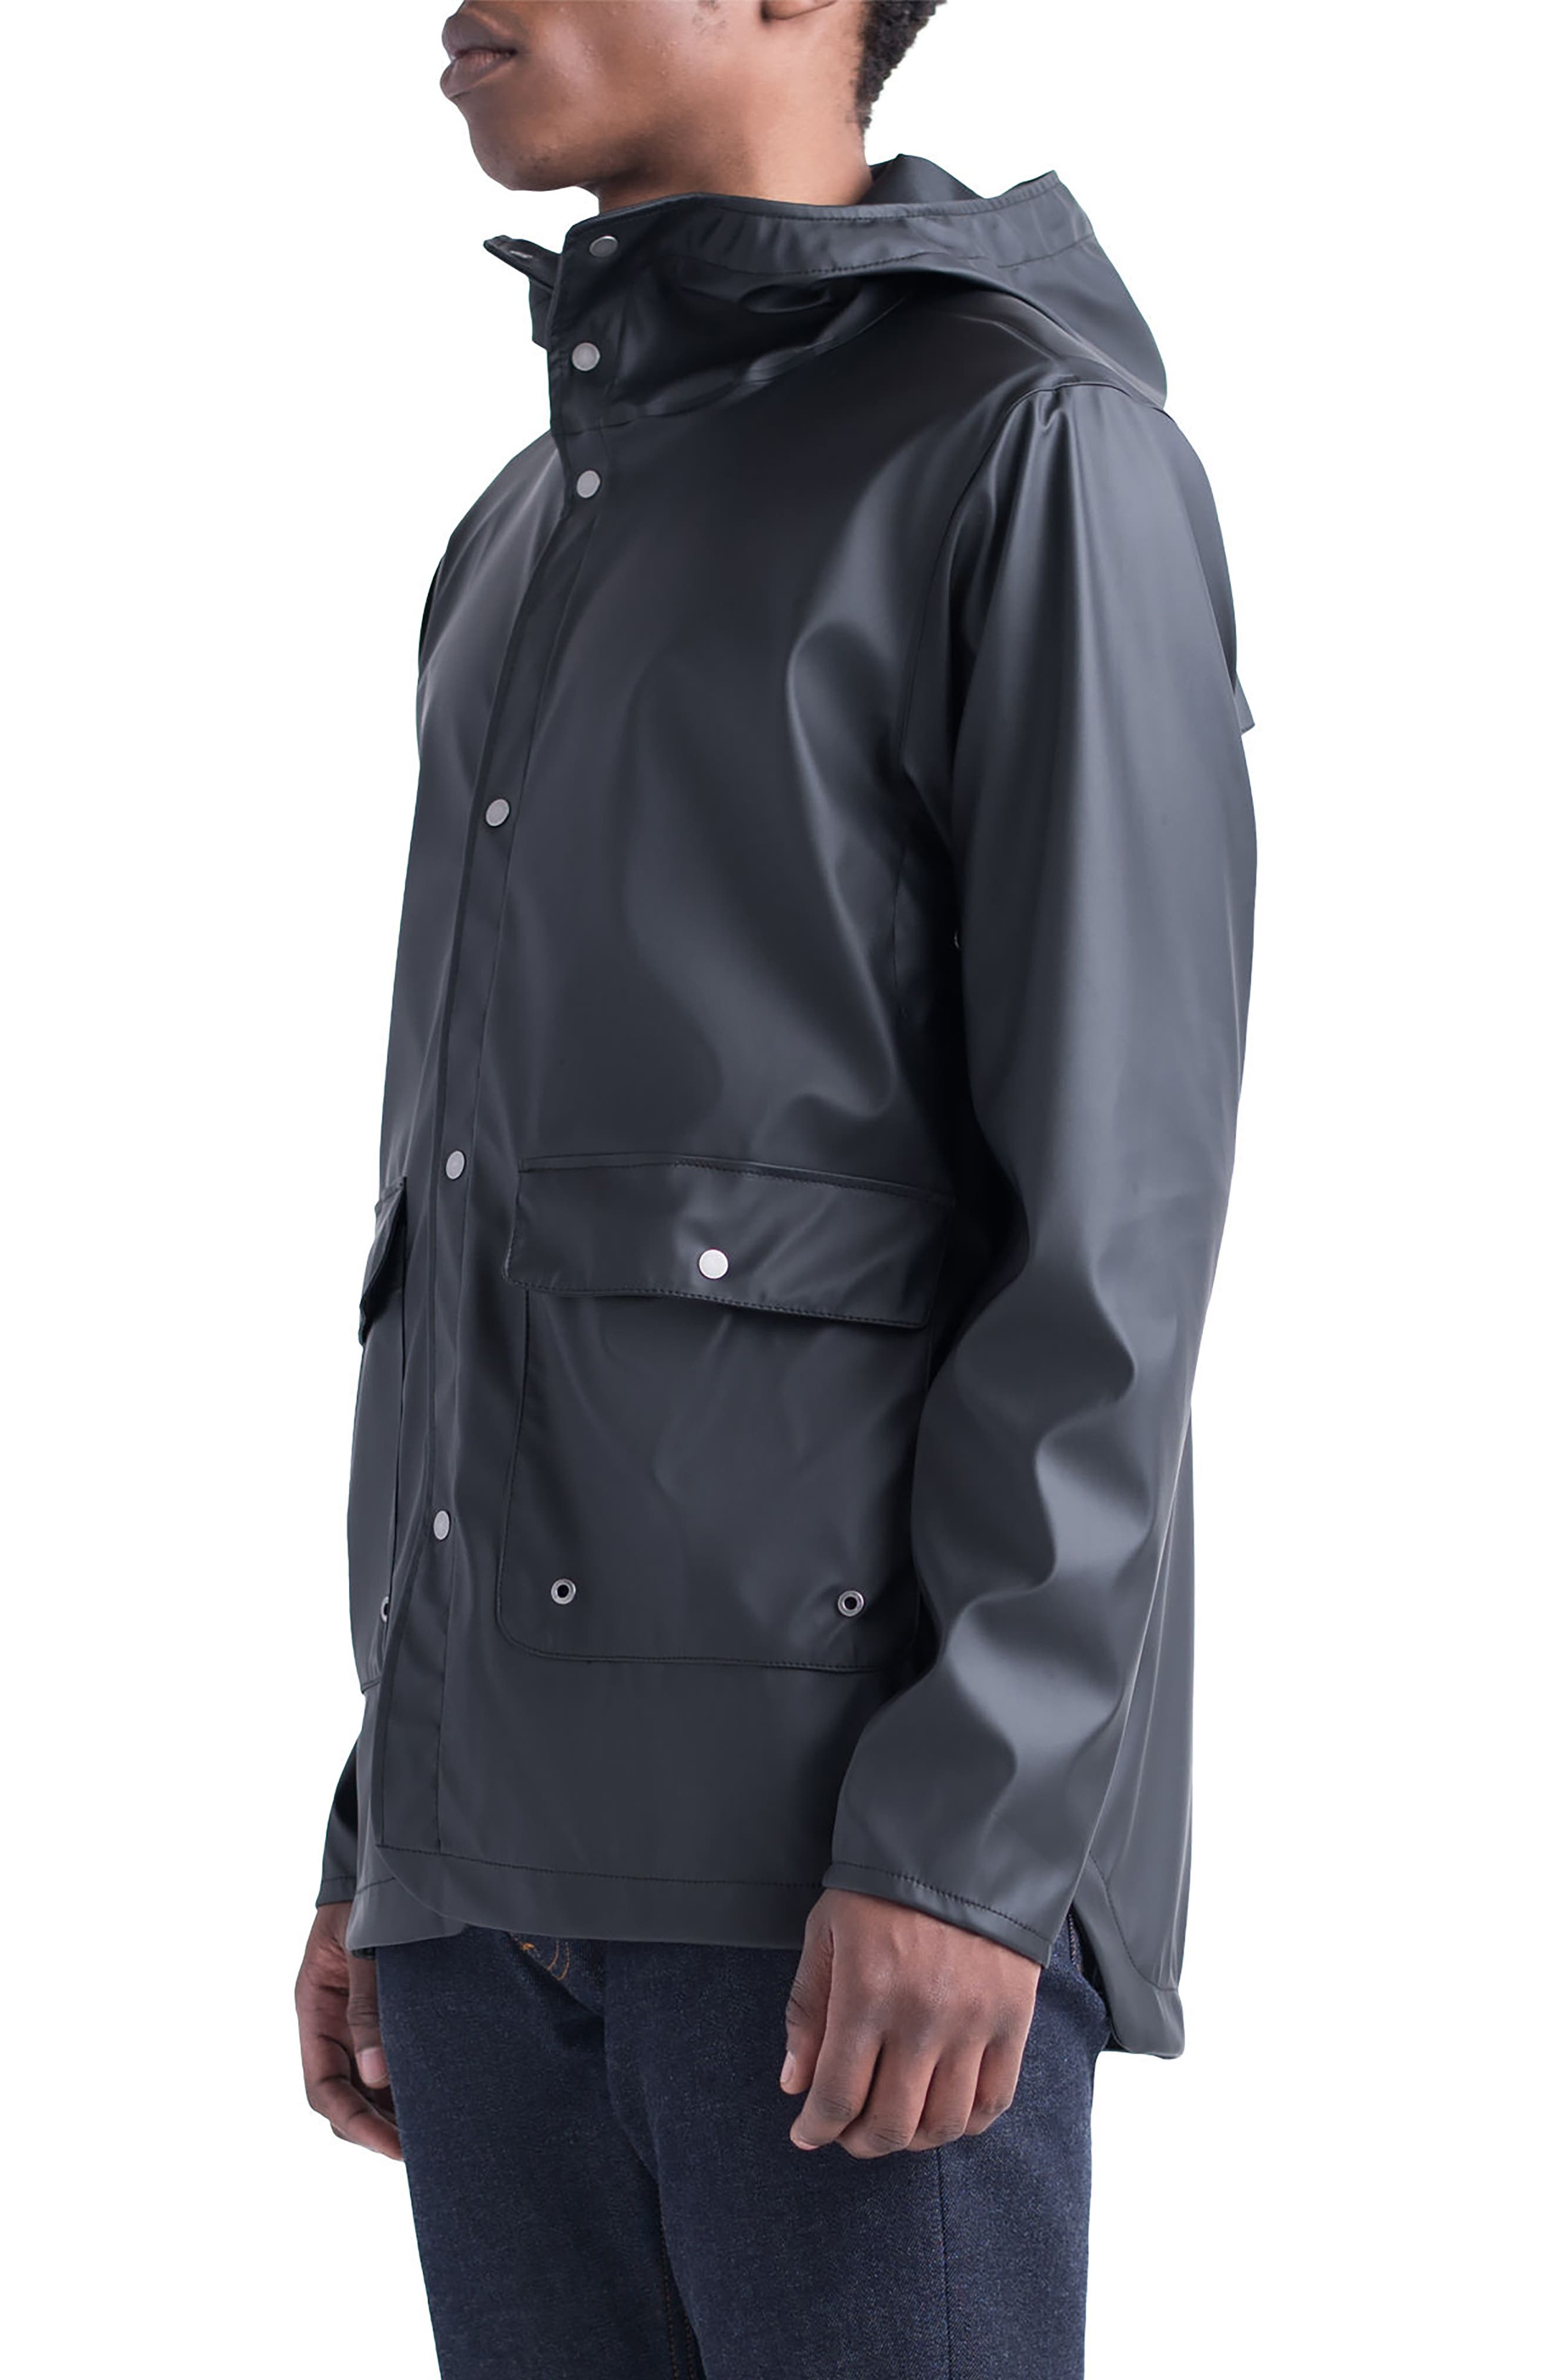 Forecast Parka,                             Alternate thumbnail 3, color,                             Black